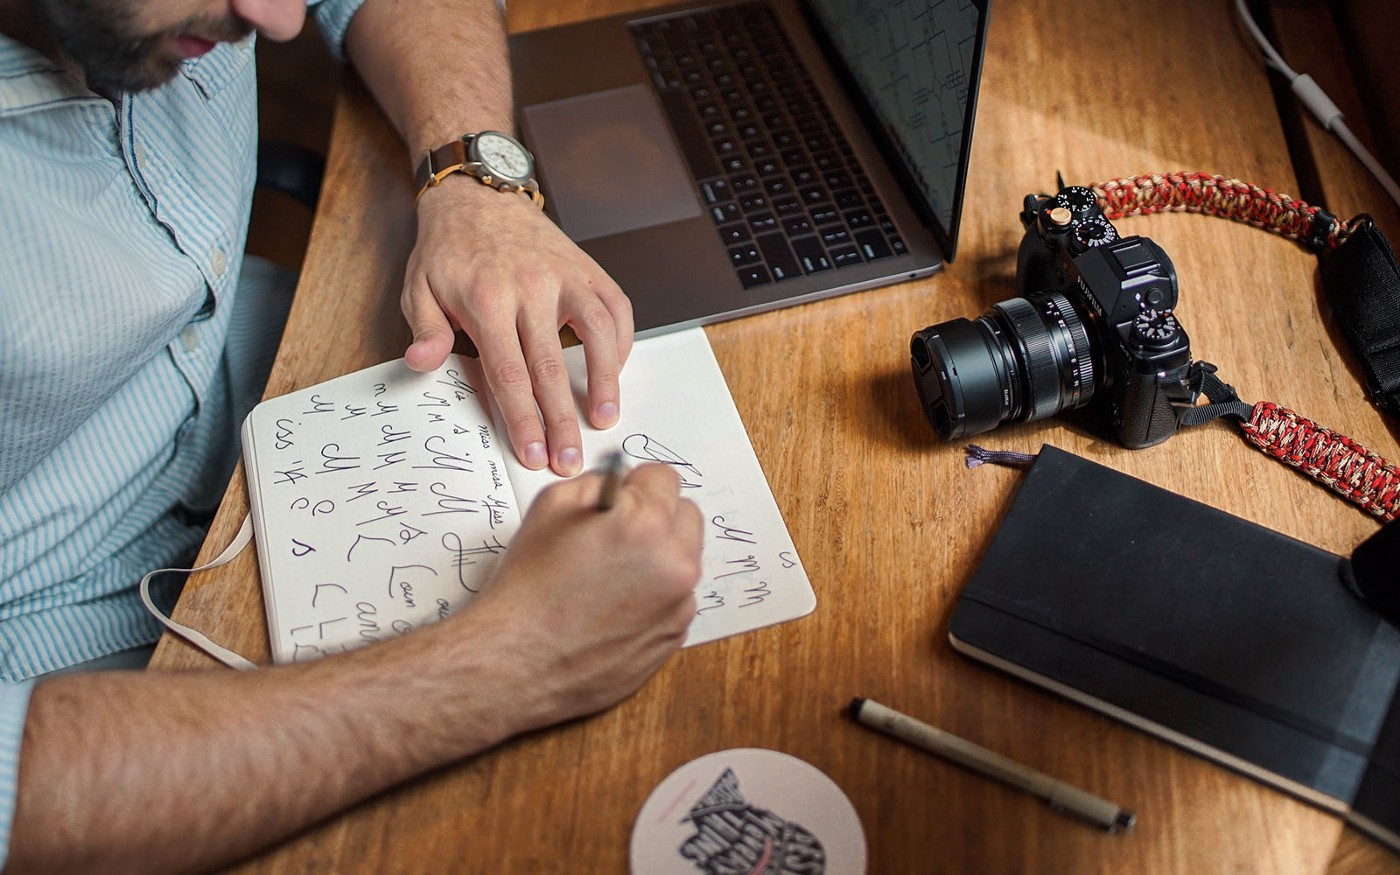 Man sketching design ideas in a notebook